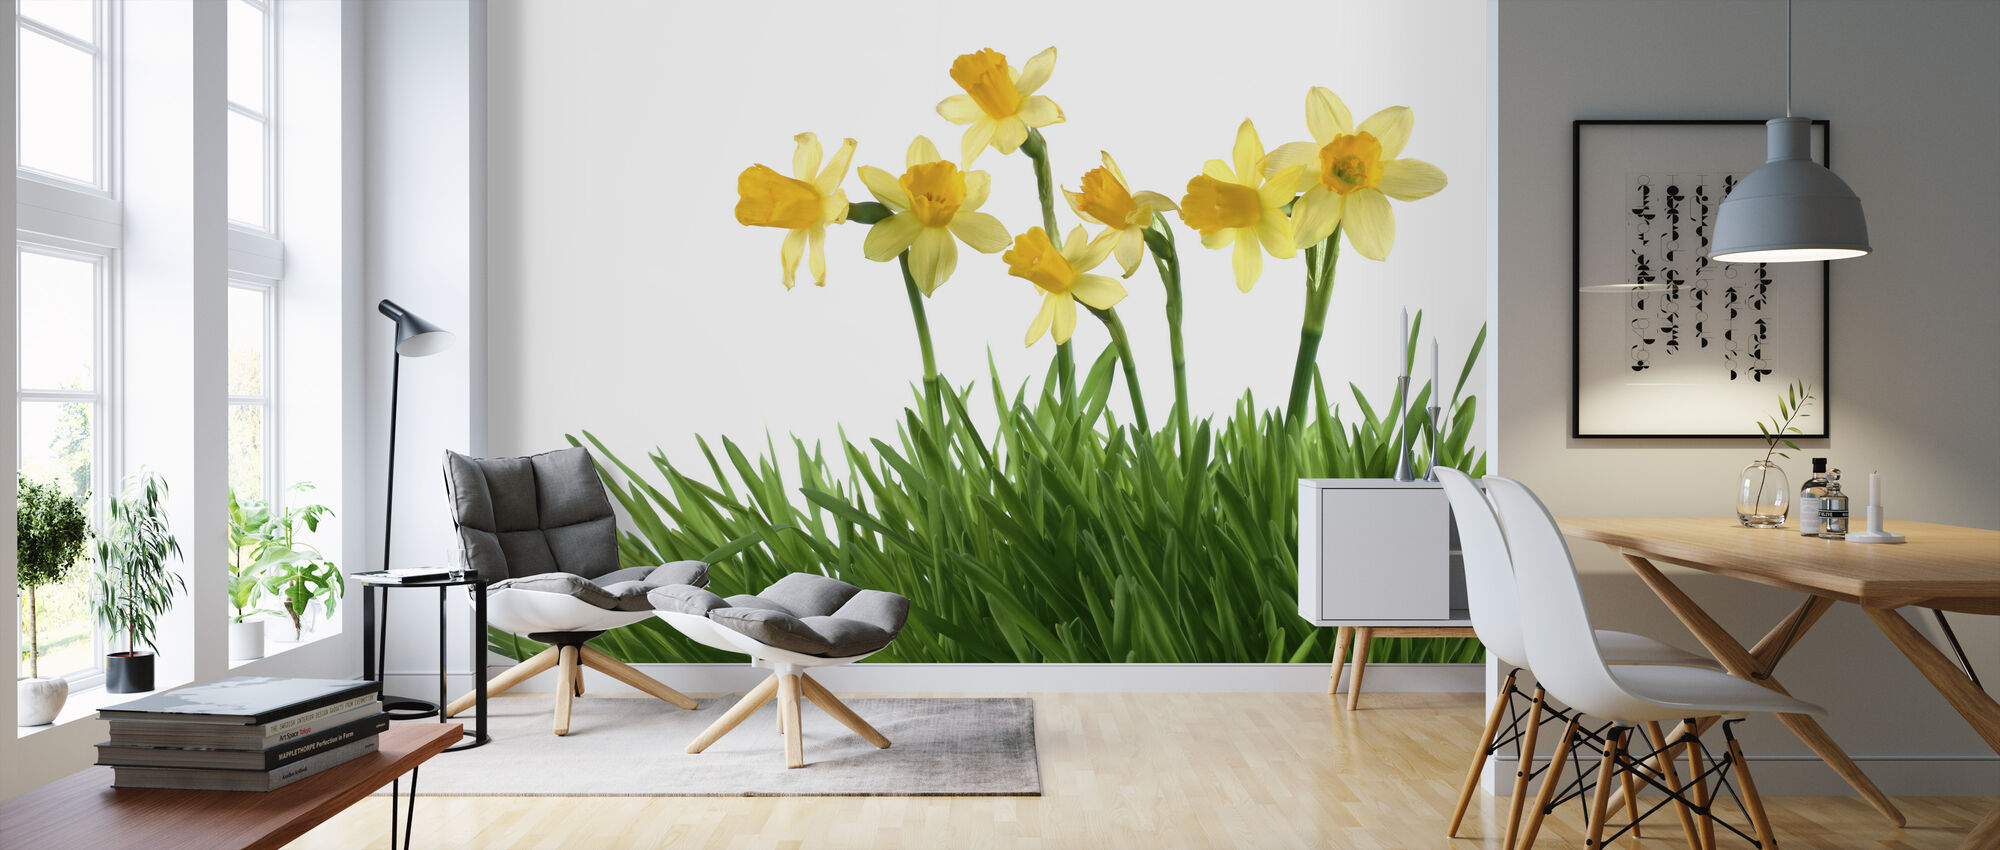 Daffodils in Green Grass - Wallpaper - Living Room